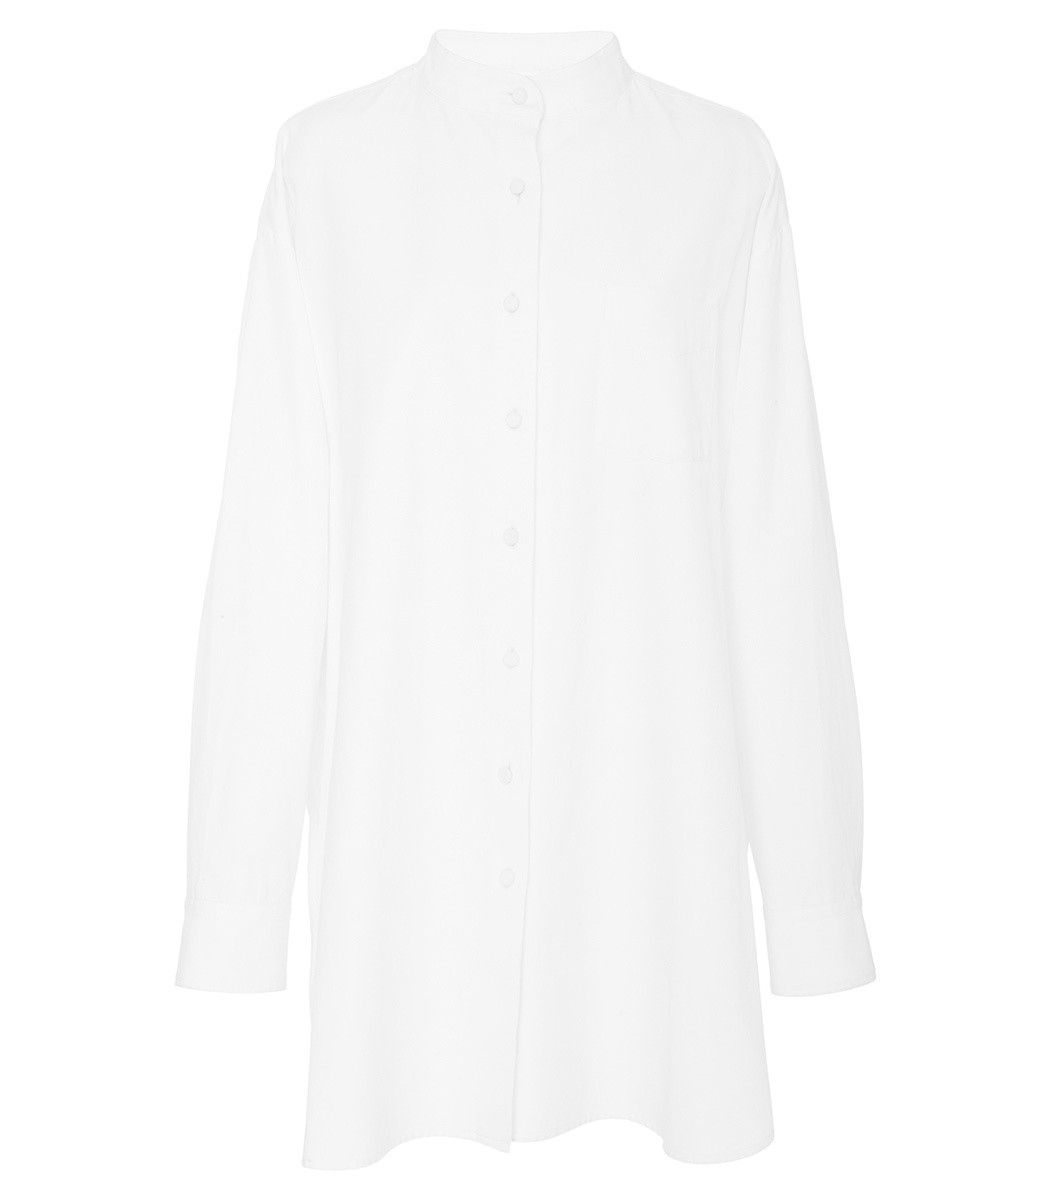 MARISA WITKIN Oxford Dress Shirt in White